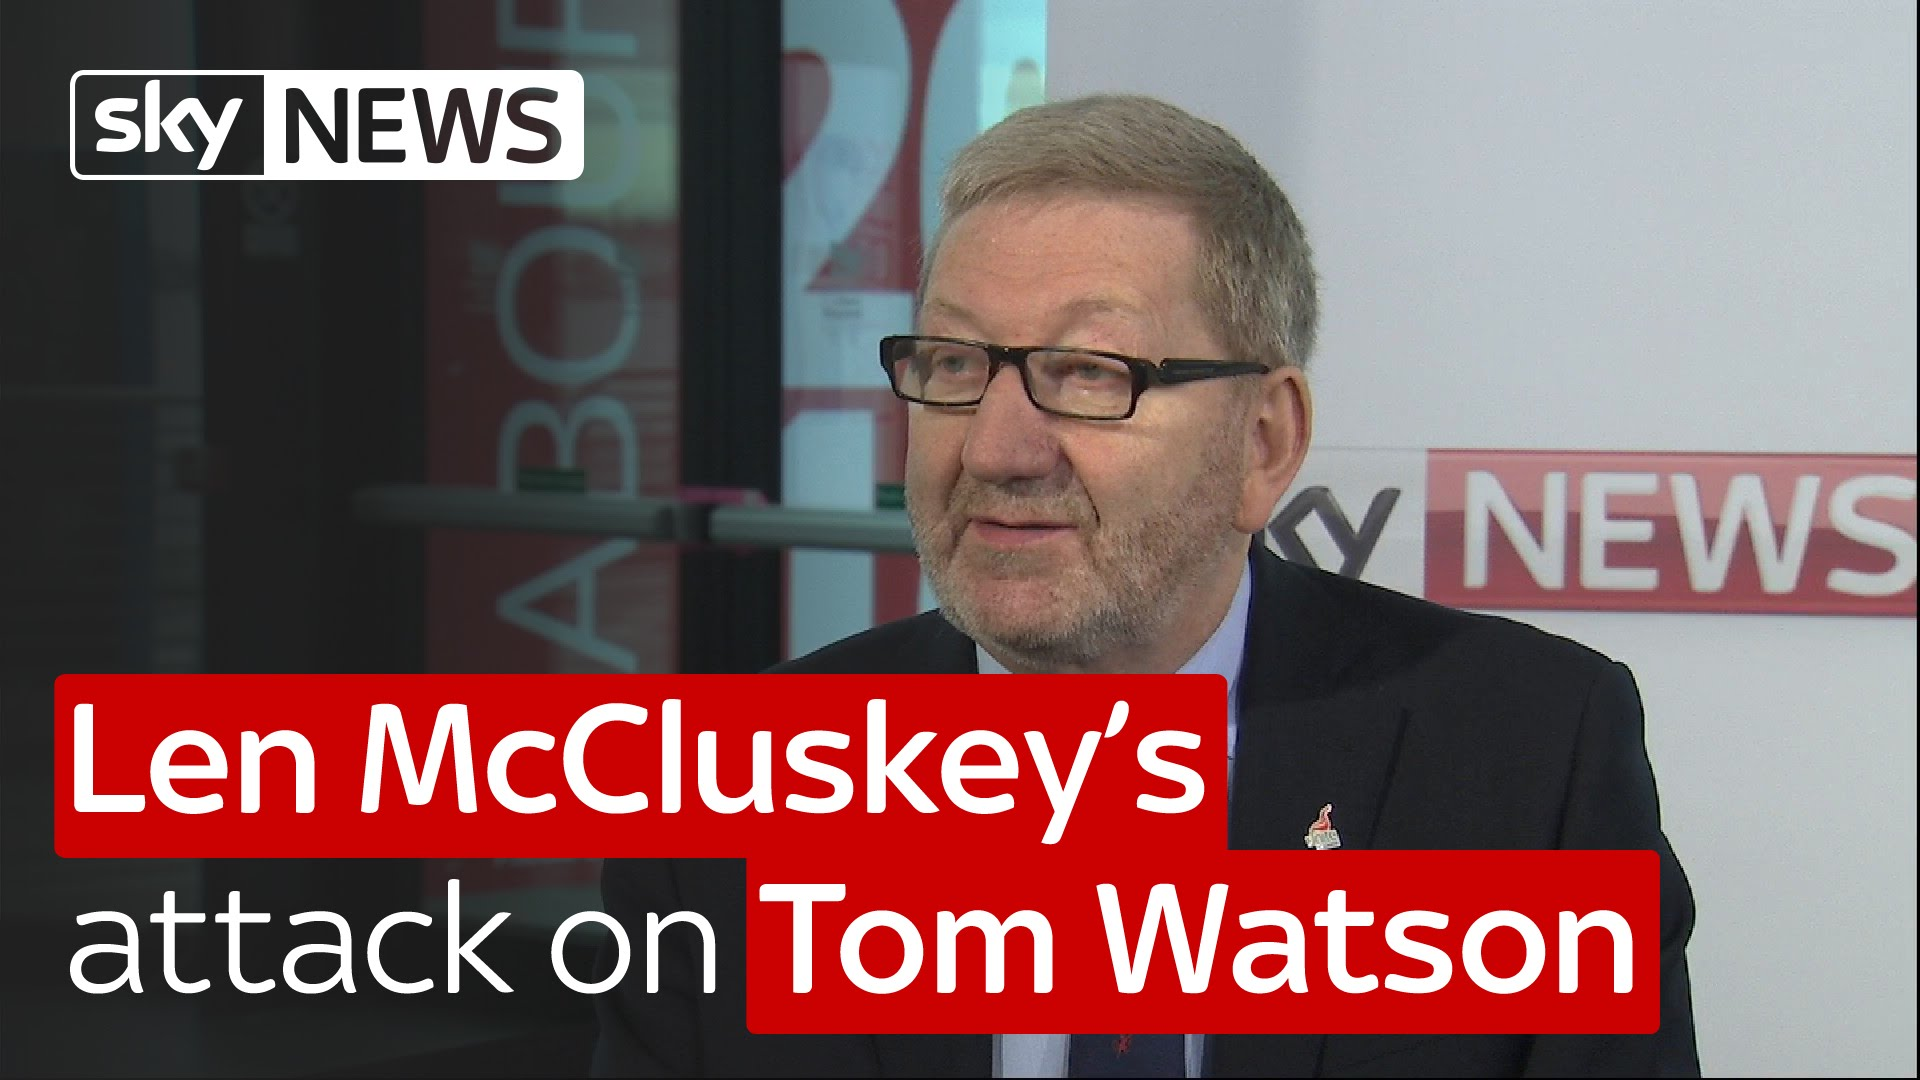 Len McCluskey's attack on Tom Watson 13